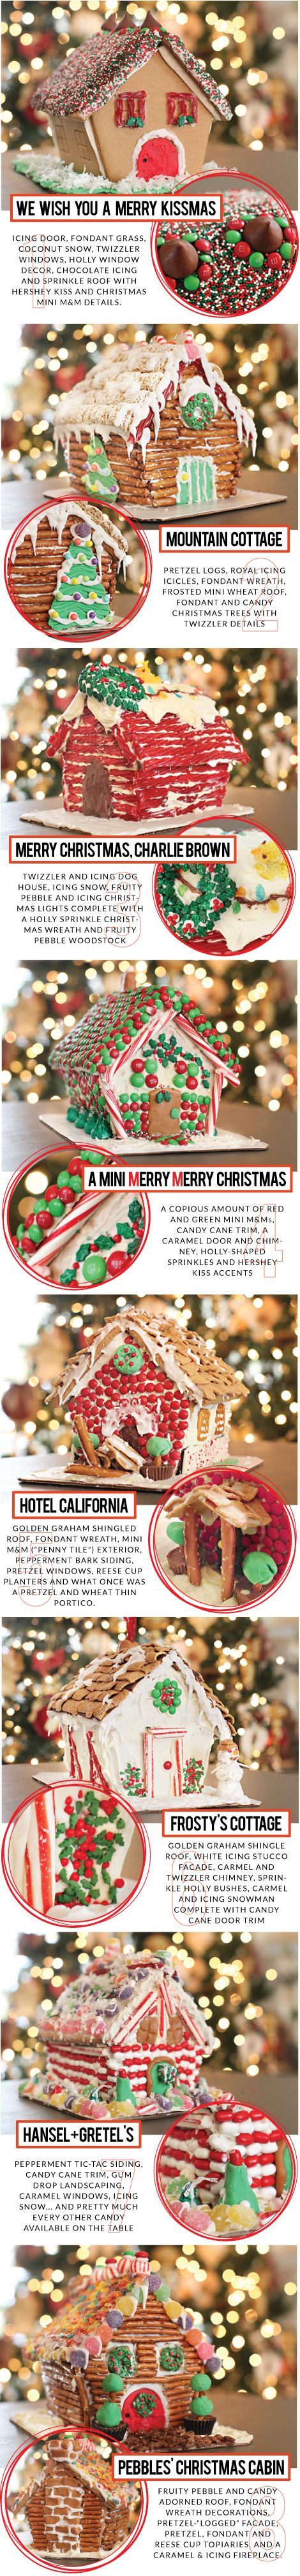 7.5 Gingerbread House Decorating Ideas / 7thhouseontheleft.com